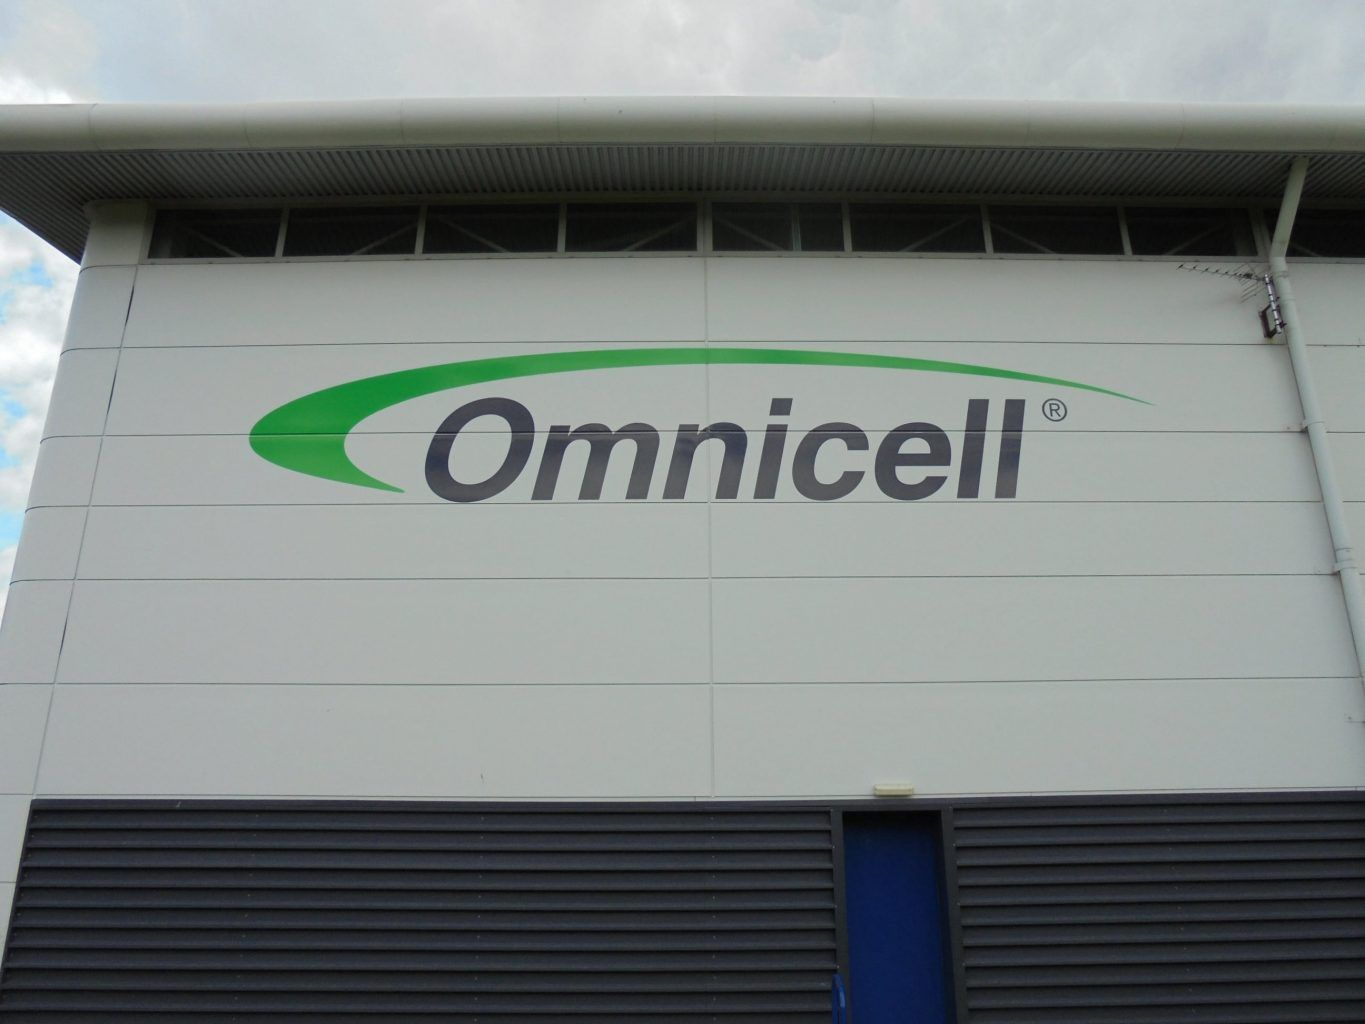 Omnicell commercial self adhesive vinyl wall graphics